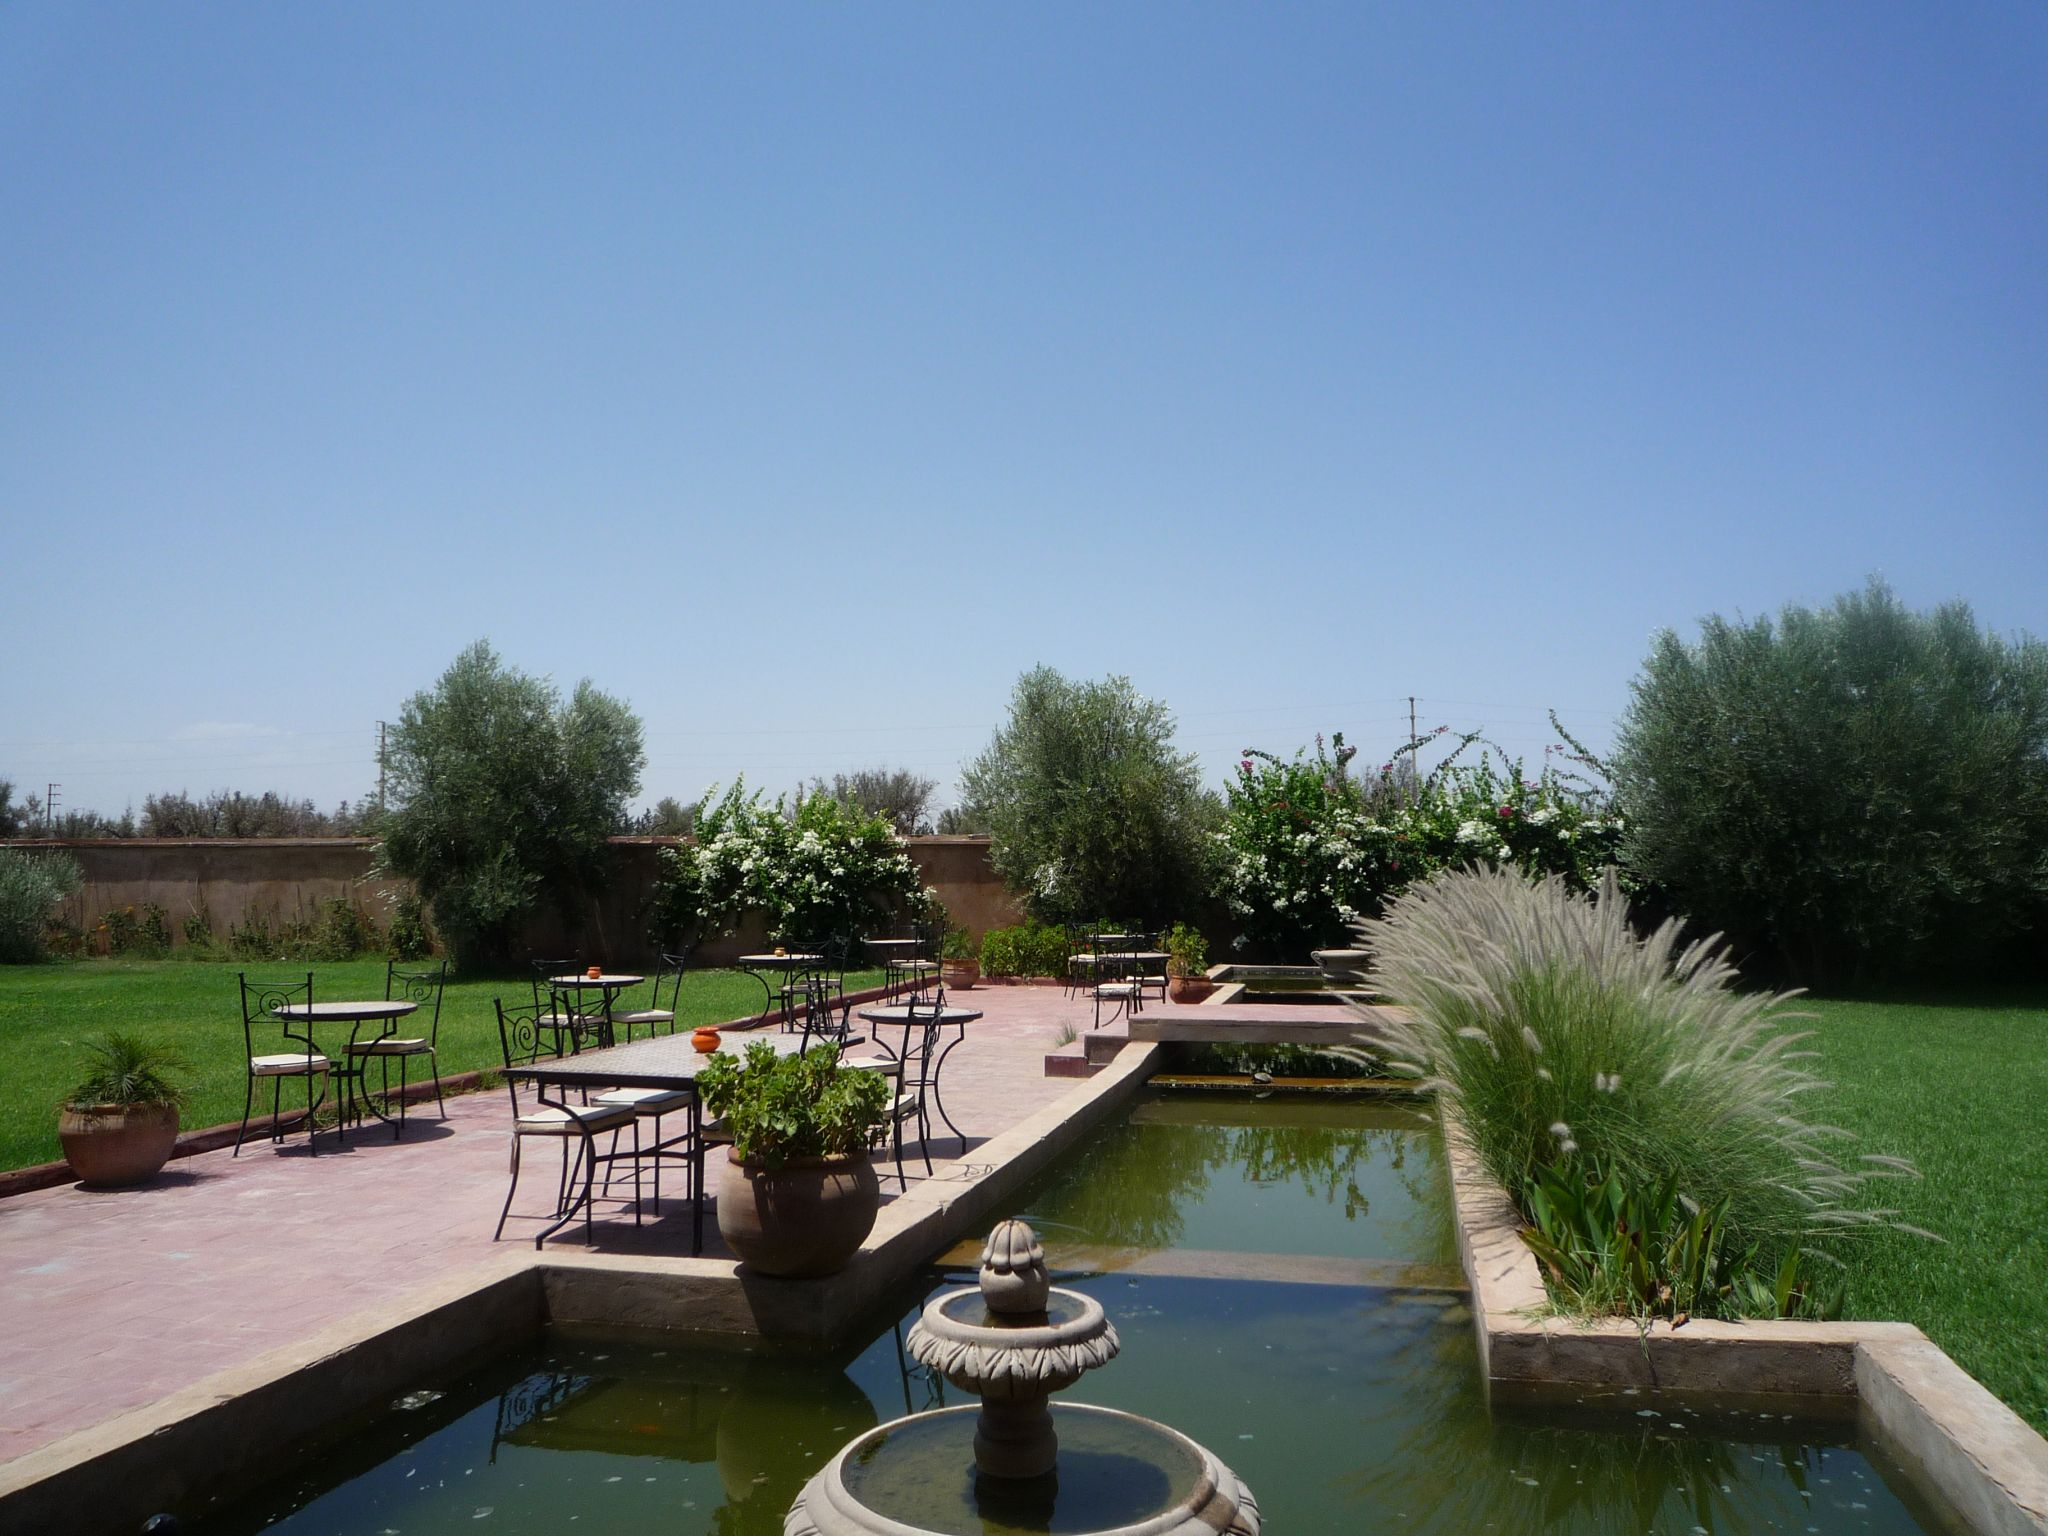 The gardens within the hotel